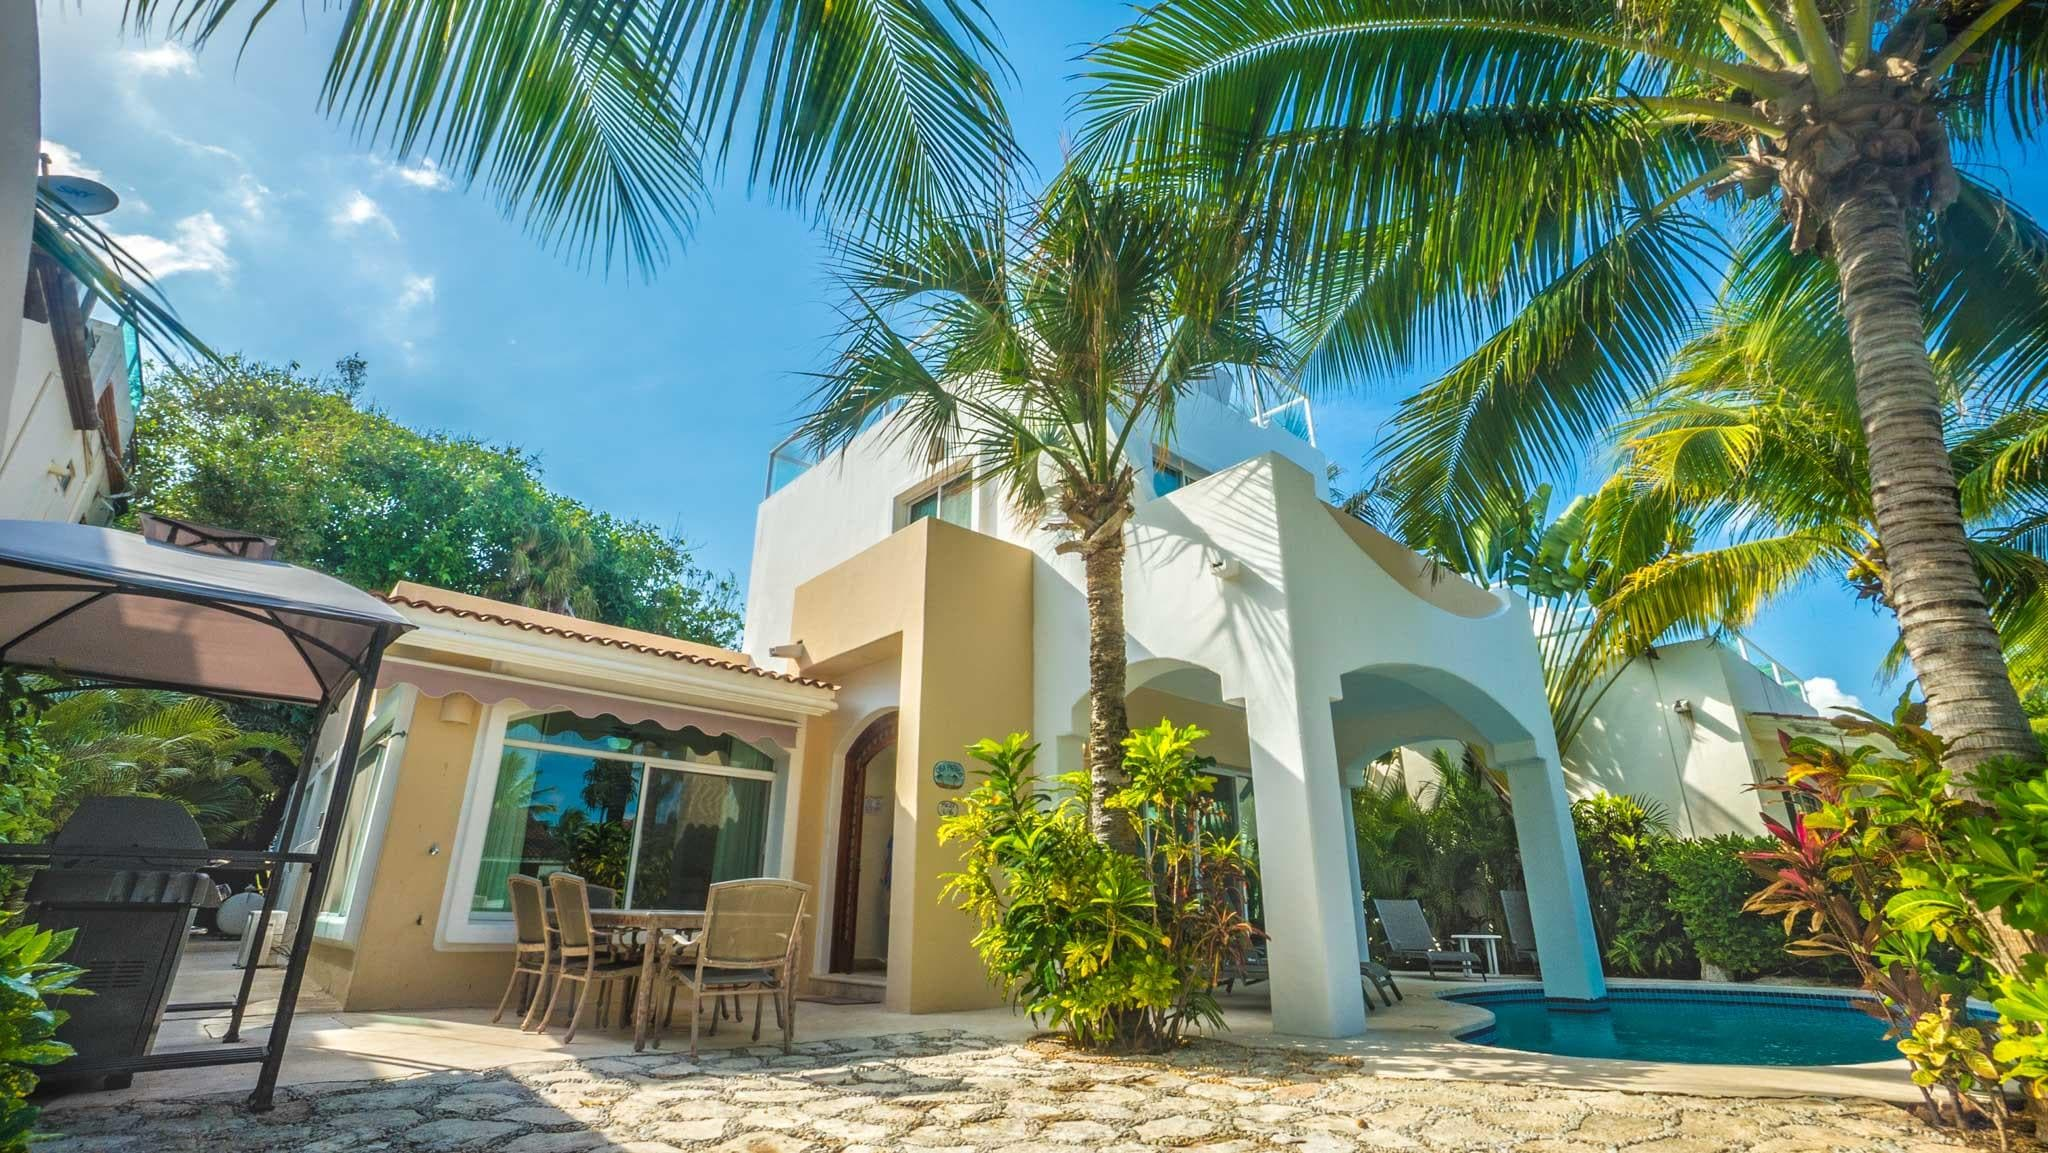 Chic Beach Community Home with 4 Large Bedrooms